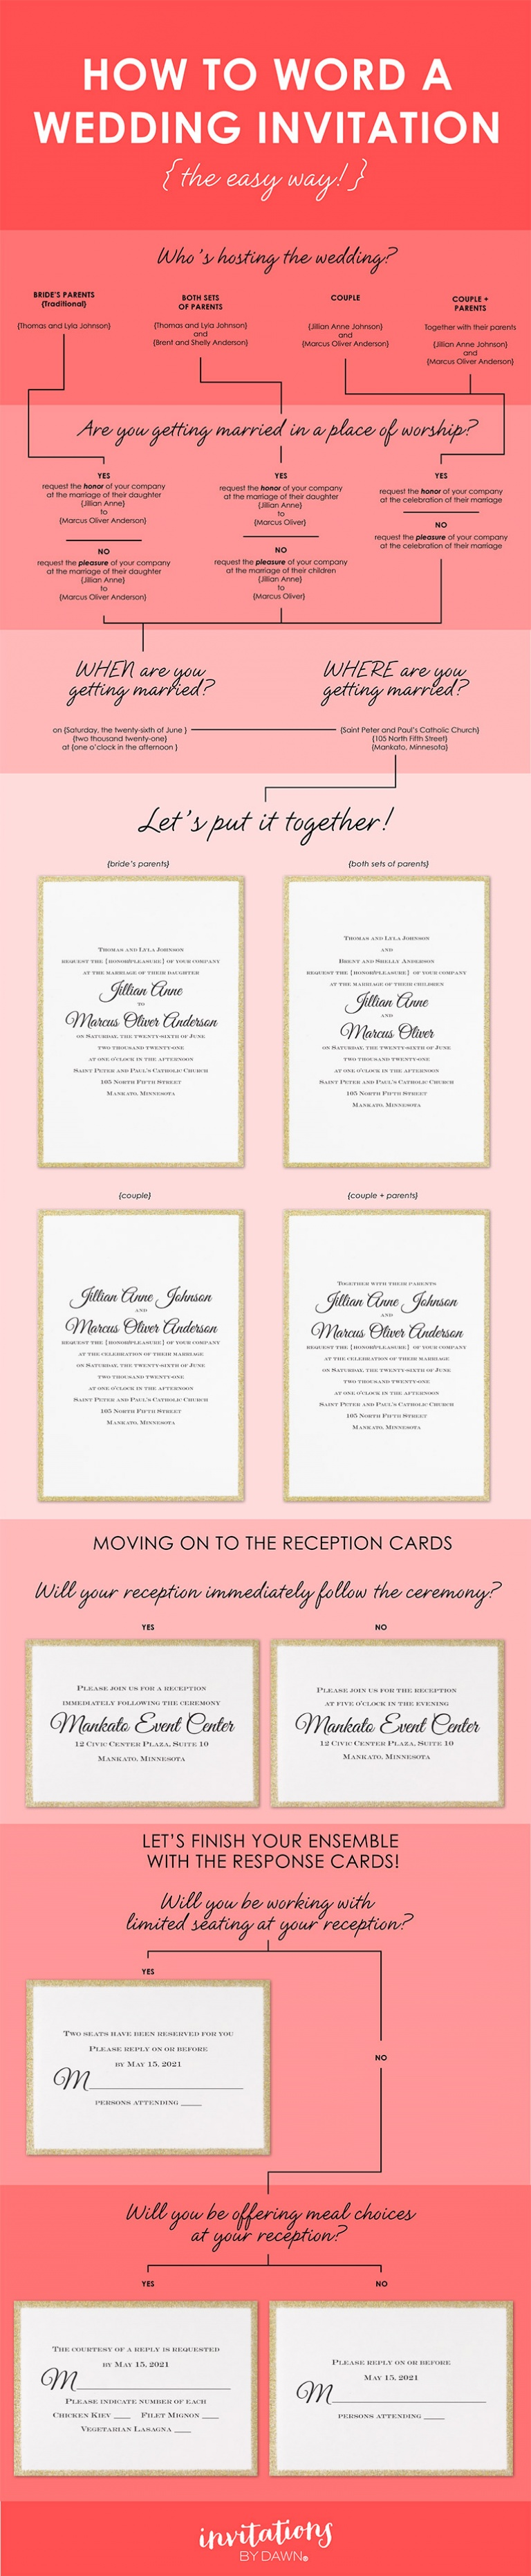 how to word your wedding invitation infographic invitations by how to word your wedding invitation infographic